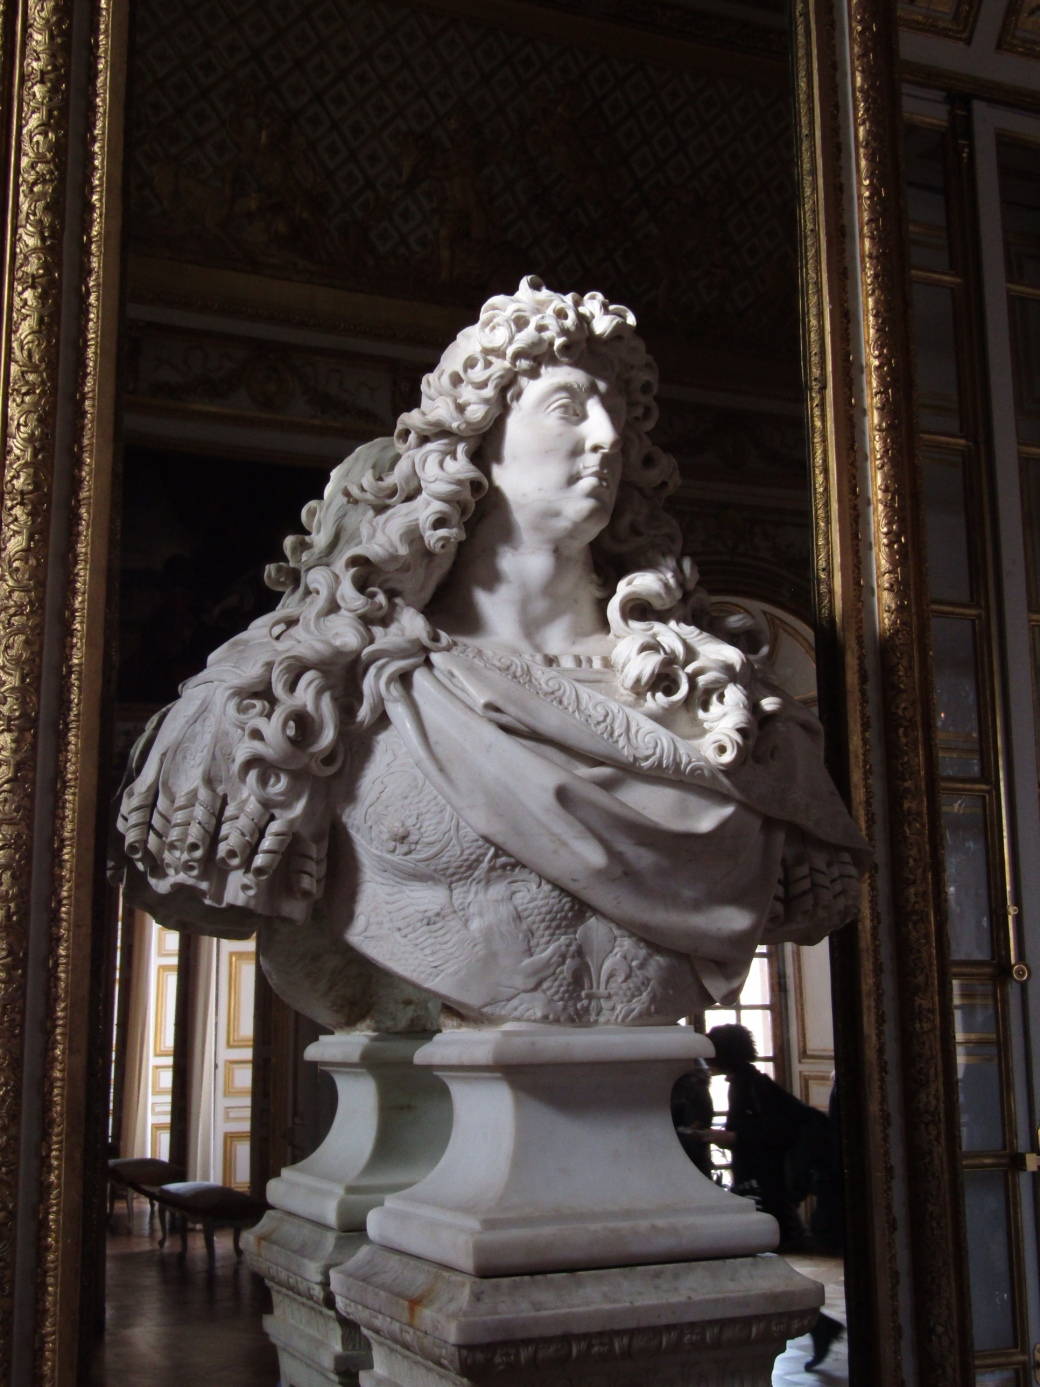 A bust of Louis XIV sits in the Bull's Eye Salon of the King's Chamber.